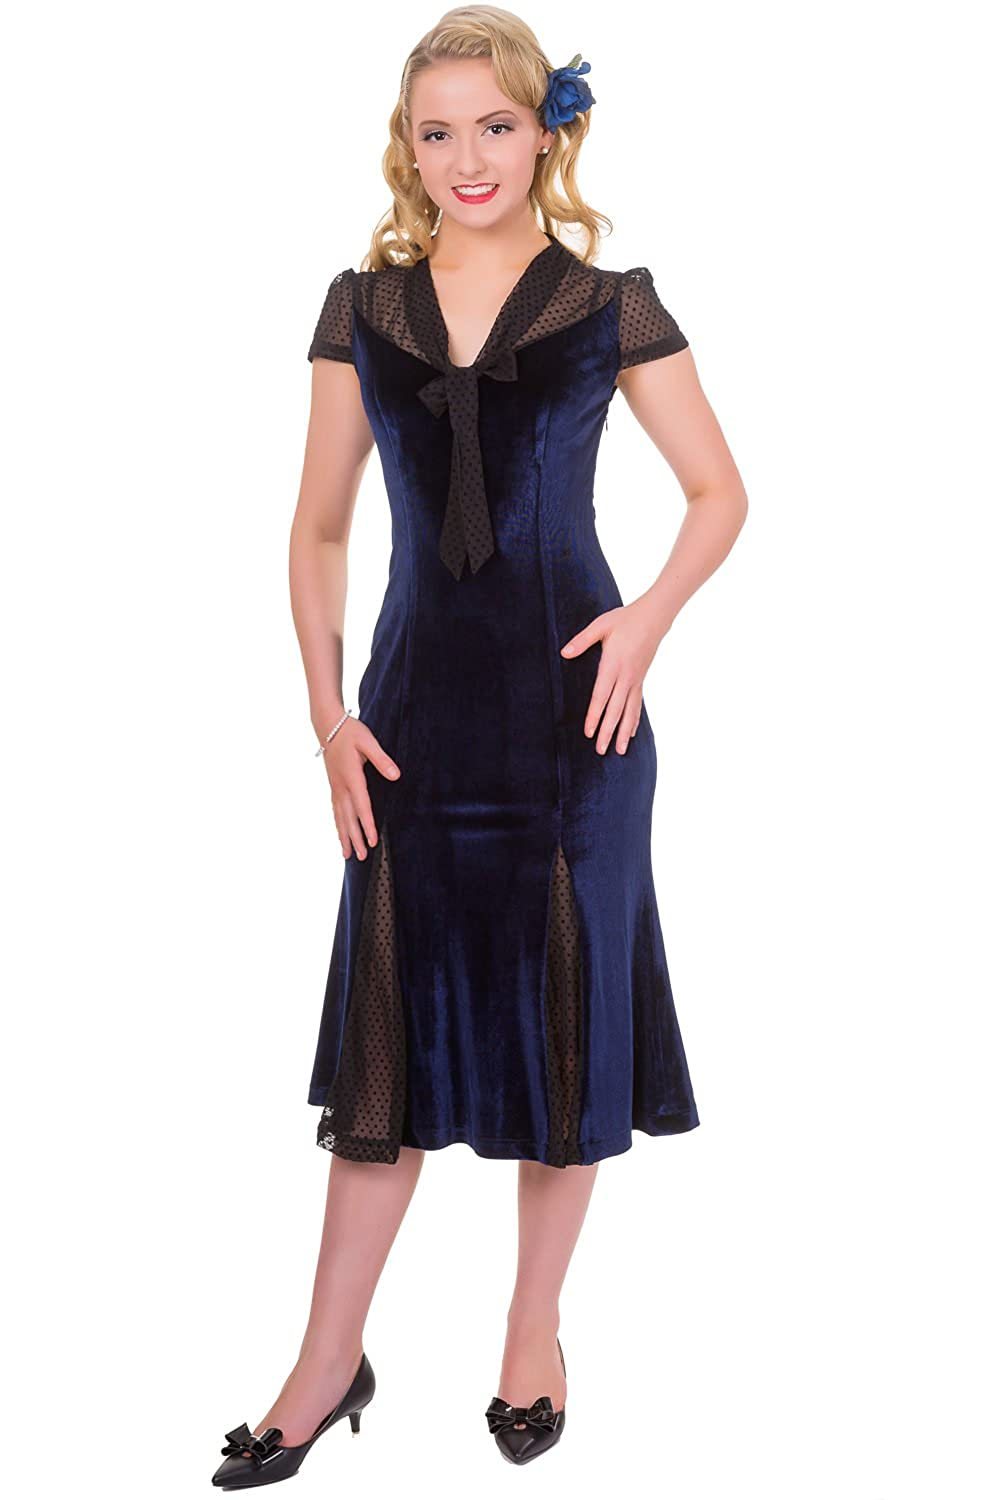 Roaring 20s Costumes- Flapper Costumes, Gangster Costumes Banned Sensation Dress $69.95 AT vintagedancer.com